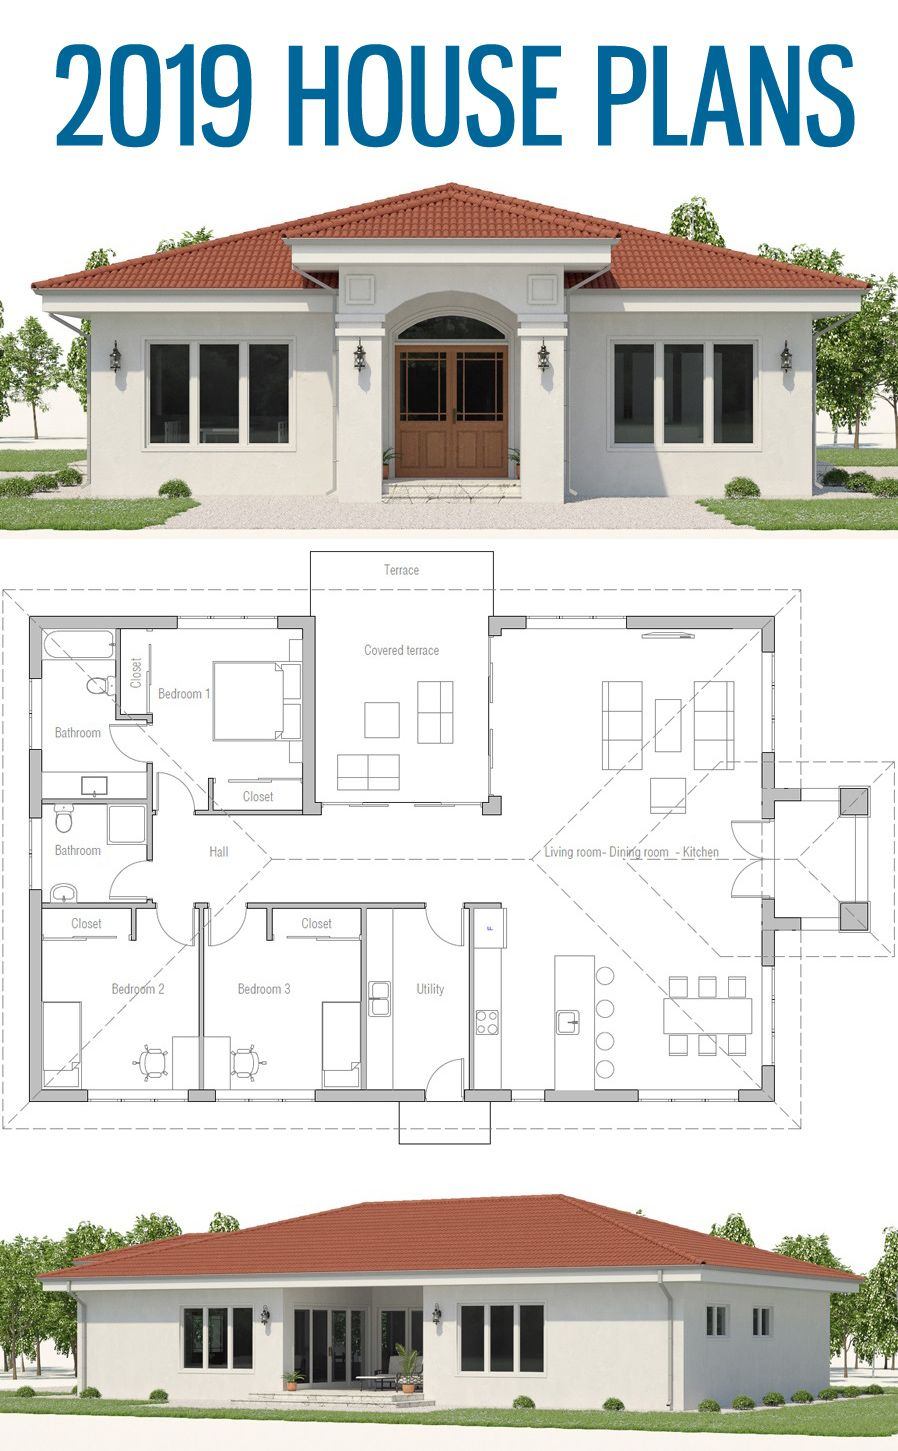 House Plans, Single Strory Home Plan, House Plans 2019